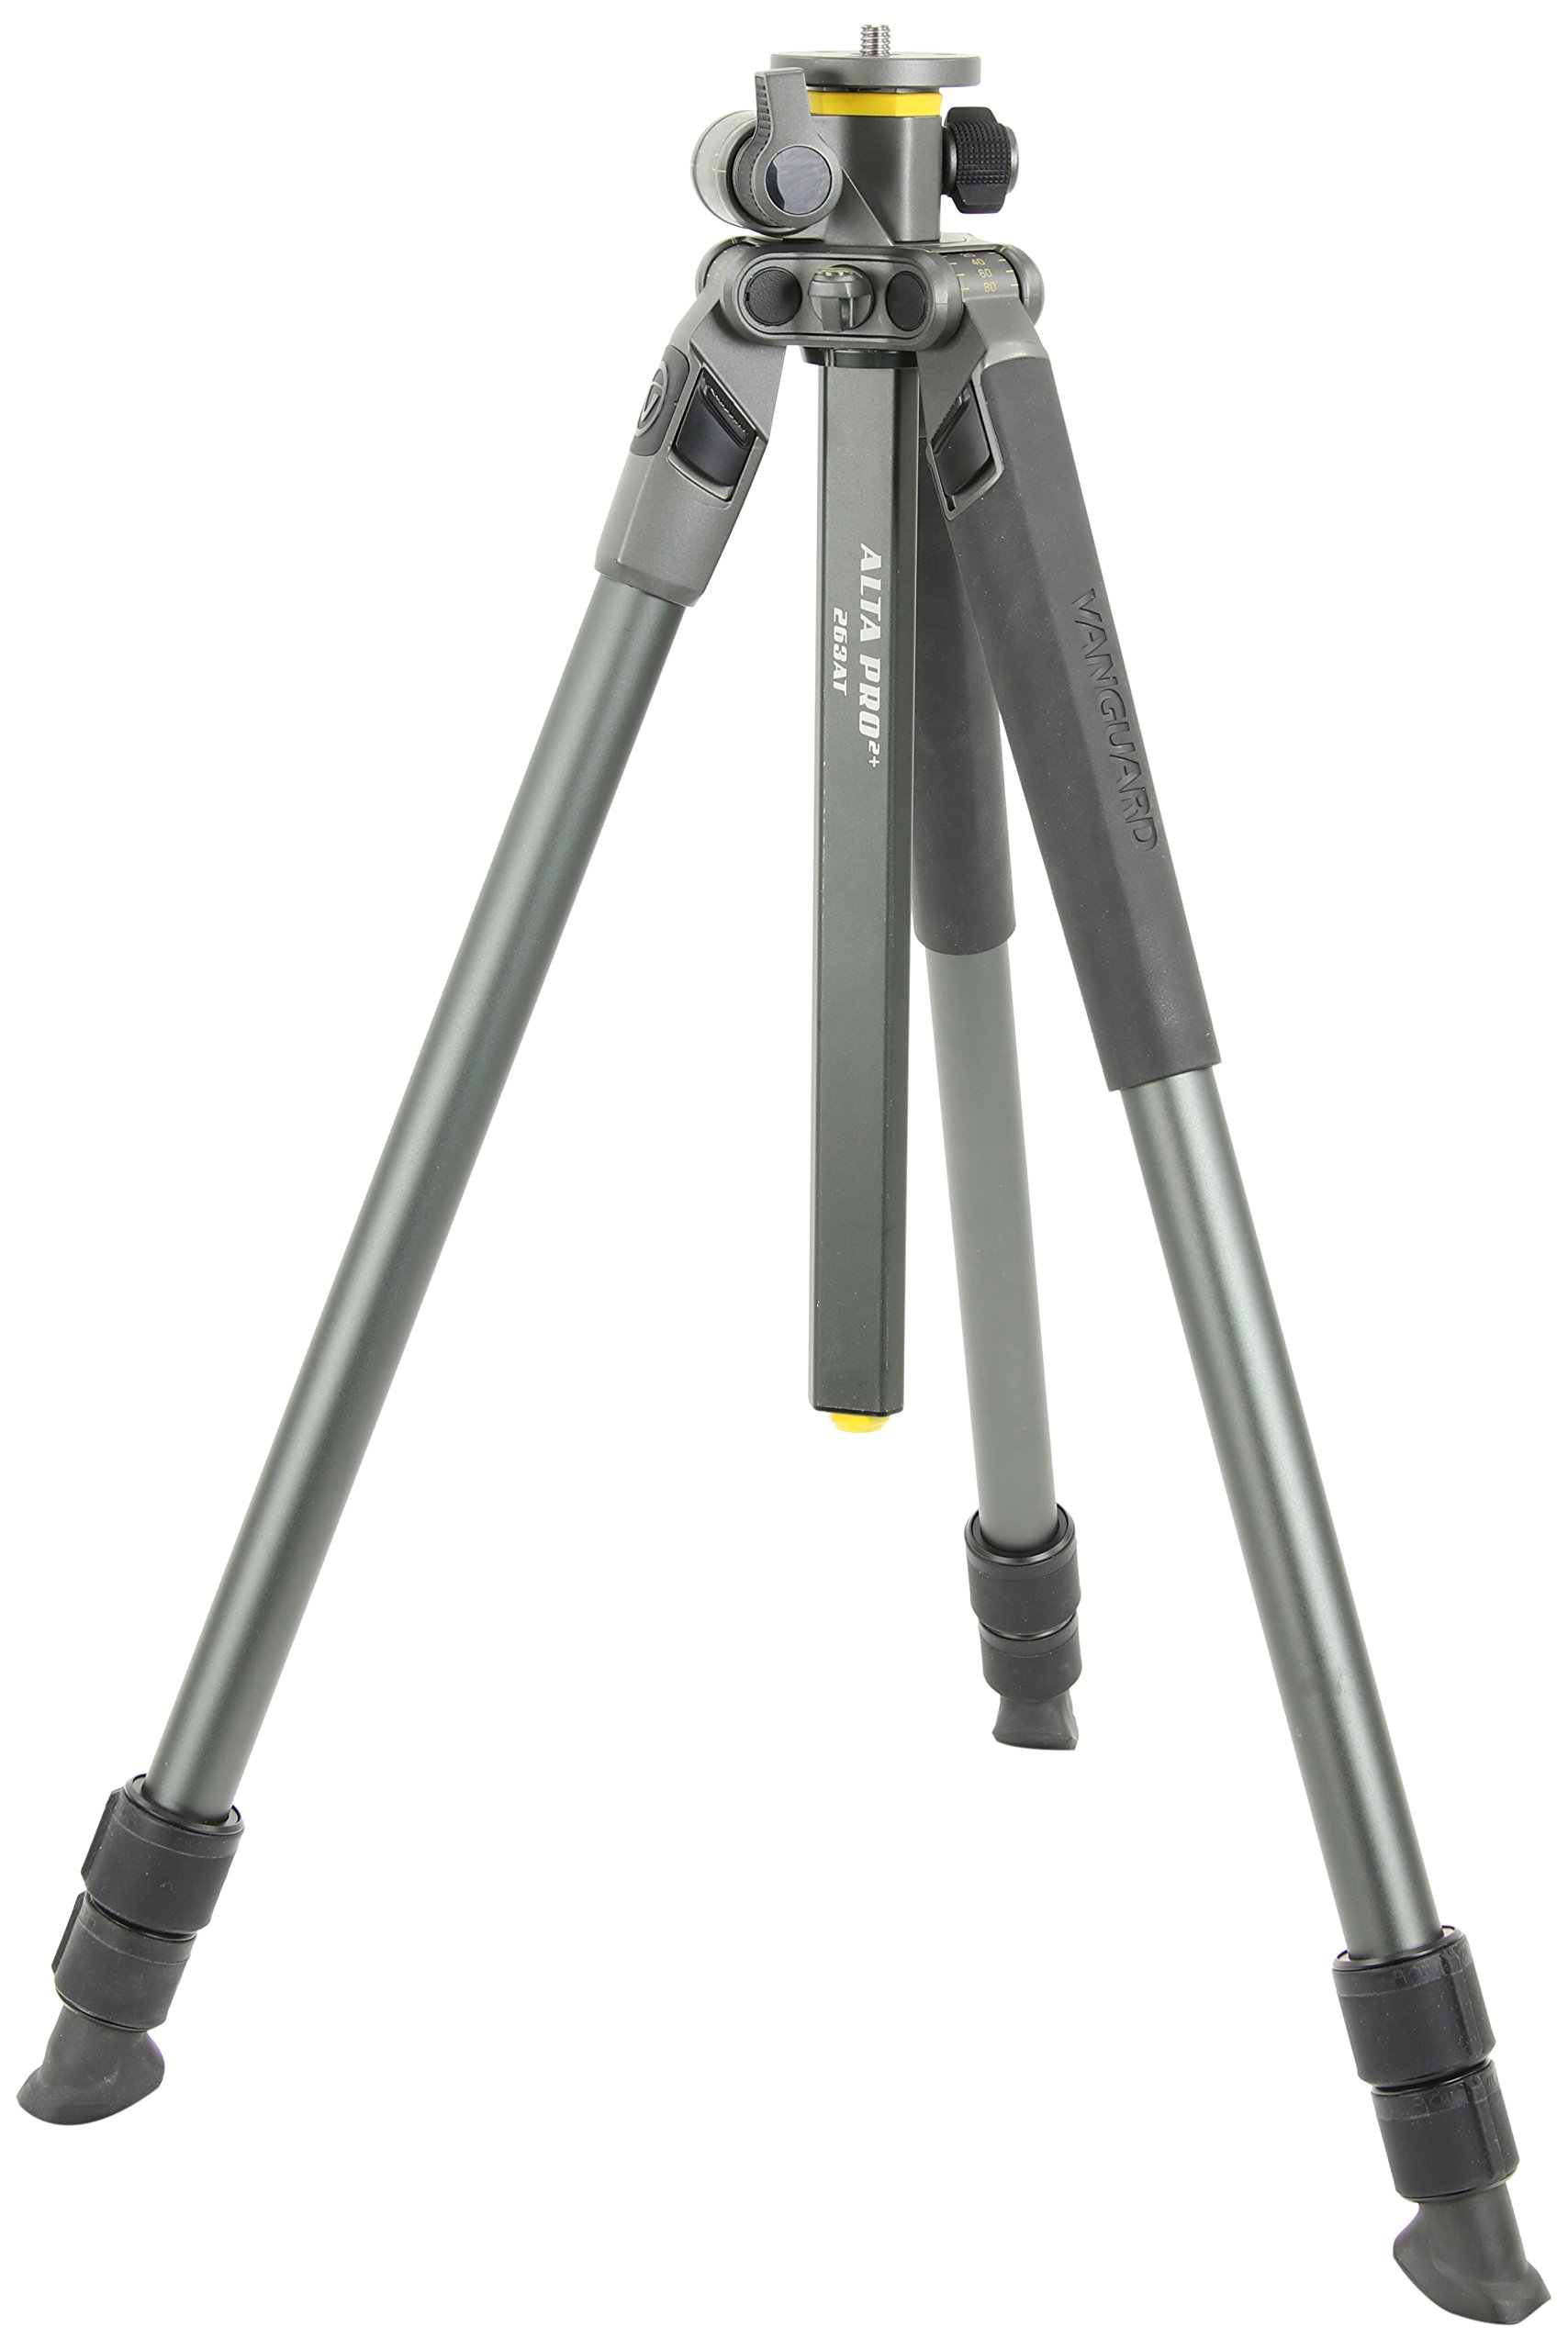 Vanguard Alta Pro 2+ 263AT Aluminum Tripod with Multi-Angle Center Column for Sony, Nikon, Canon DSLR Cameras by Vanguard